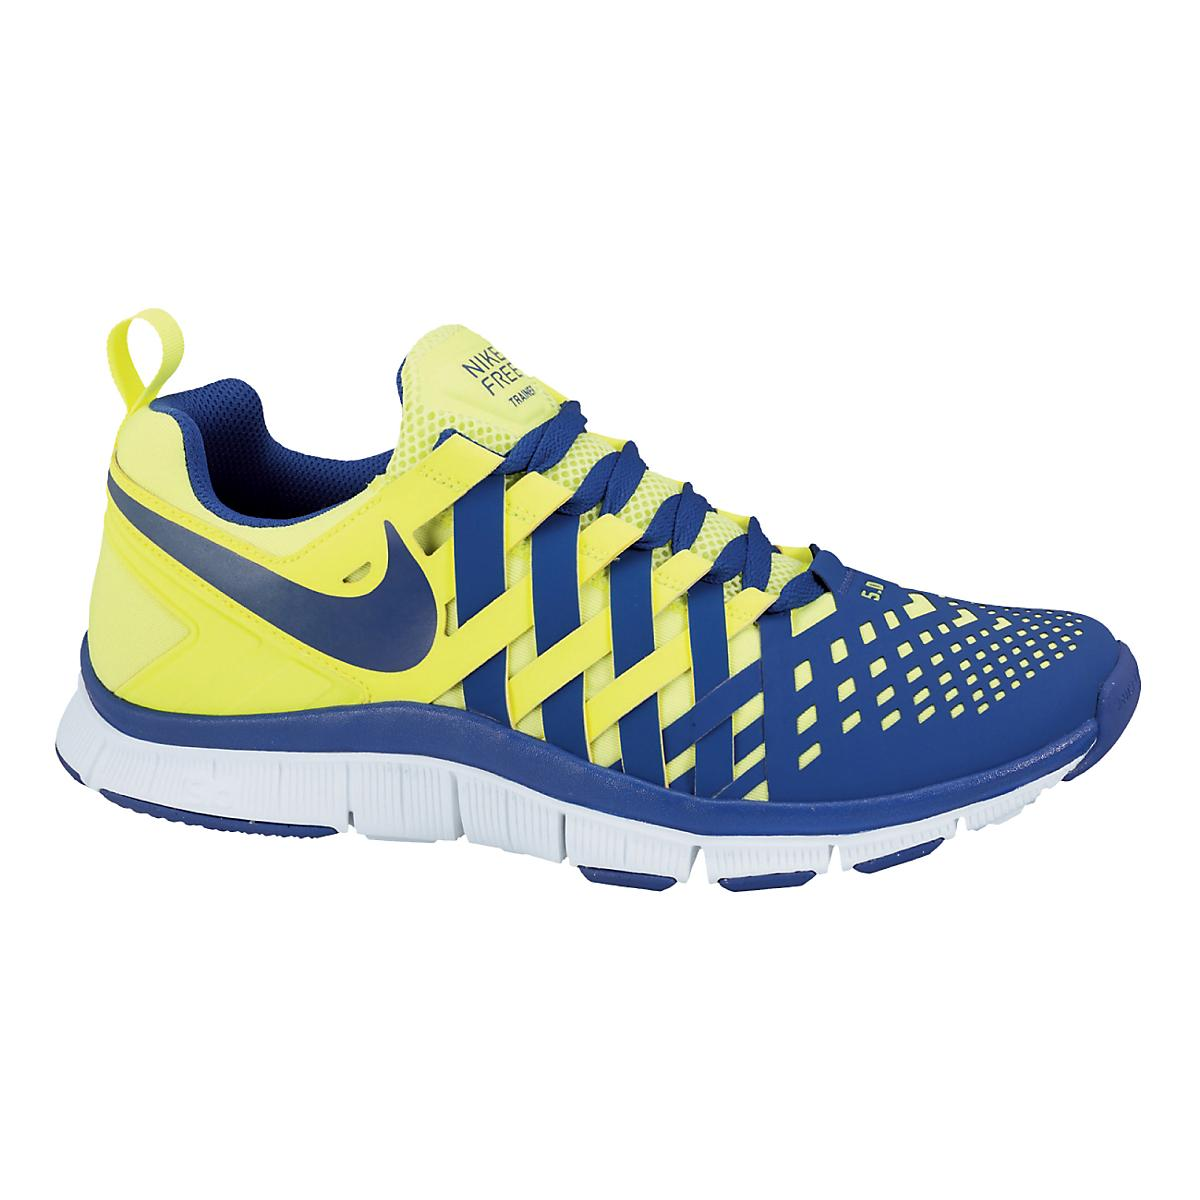 cd1bd77e4771 Mens Nike Free Trainer 5.0 Cross Training Shoe at Road Runner Sports